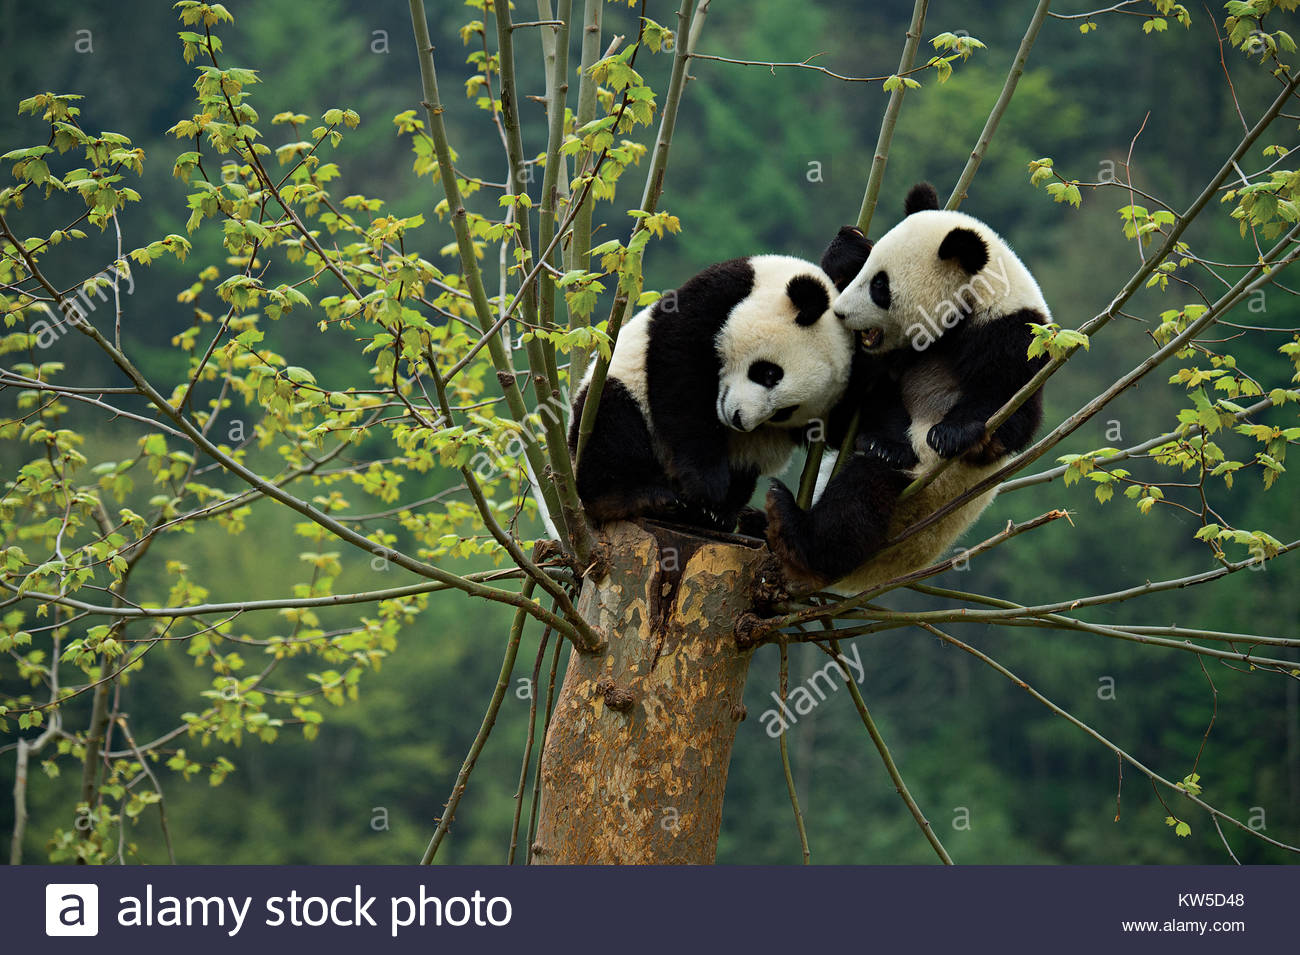 A pair of giant panda cubs play in a tree at the Gengda Giant Panda base that is part of the Wolong Natural Reserve. - Stock Image